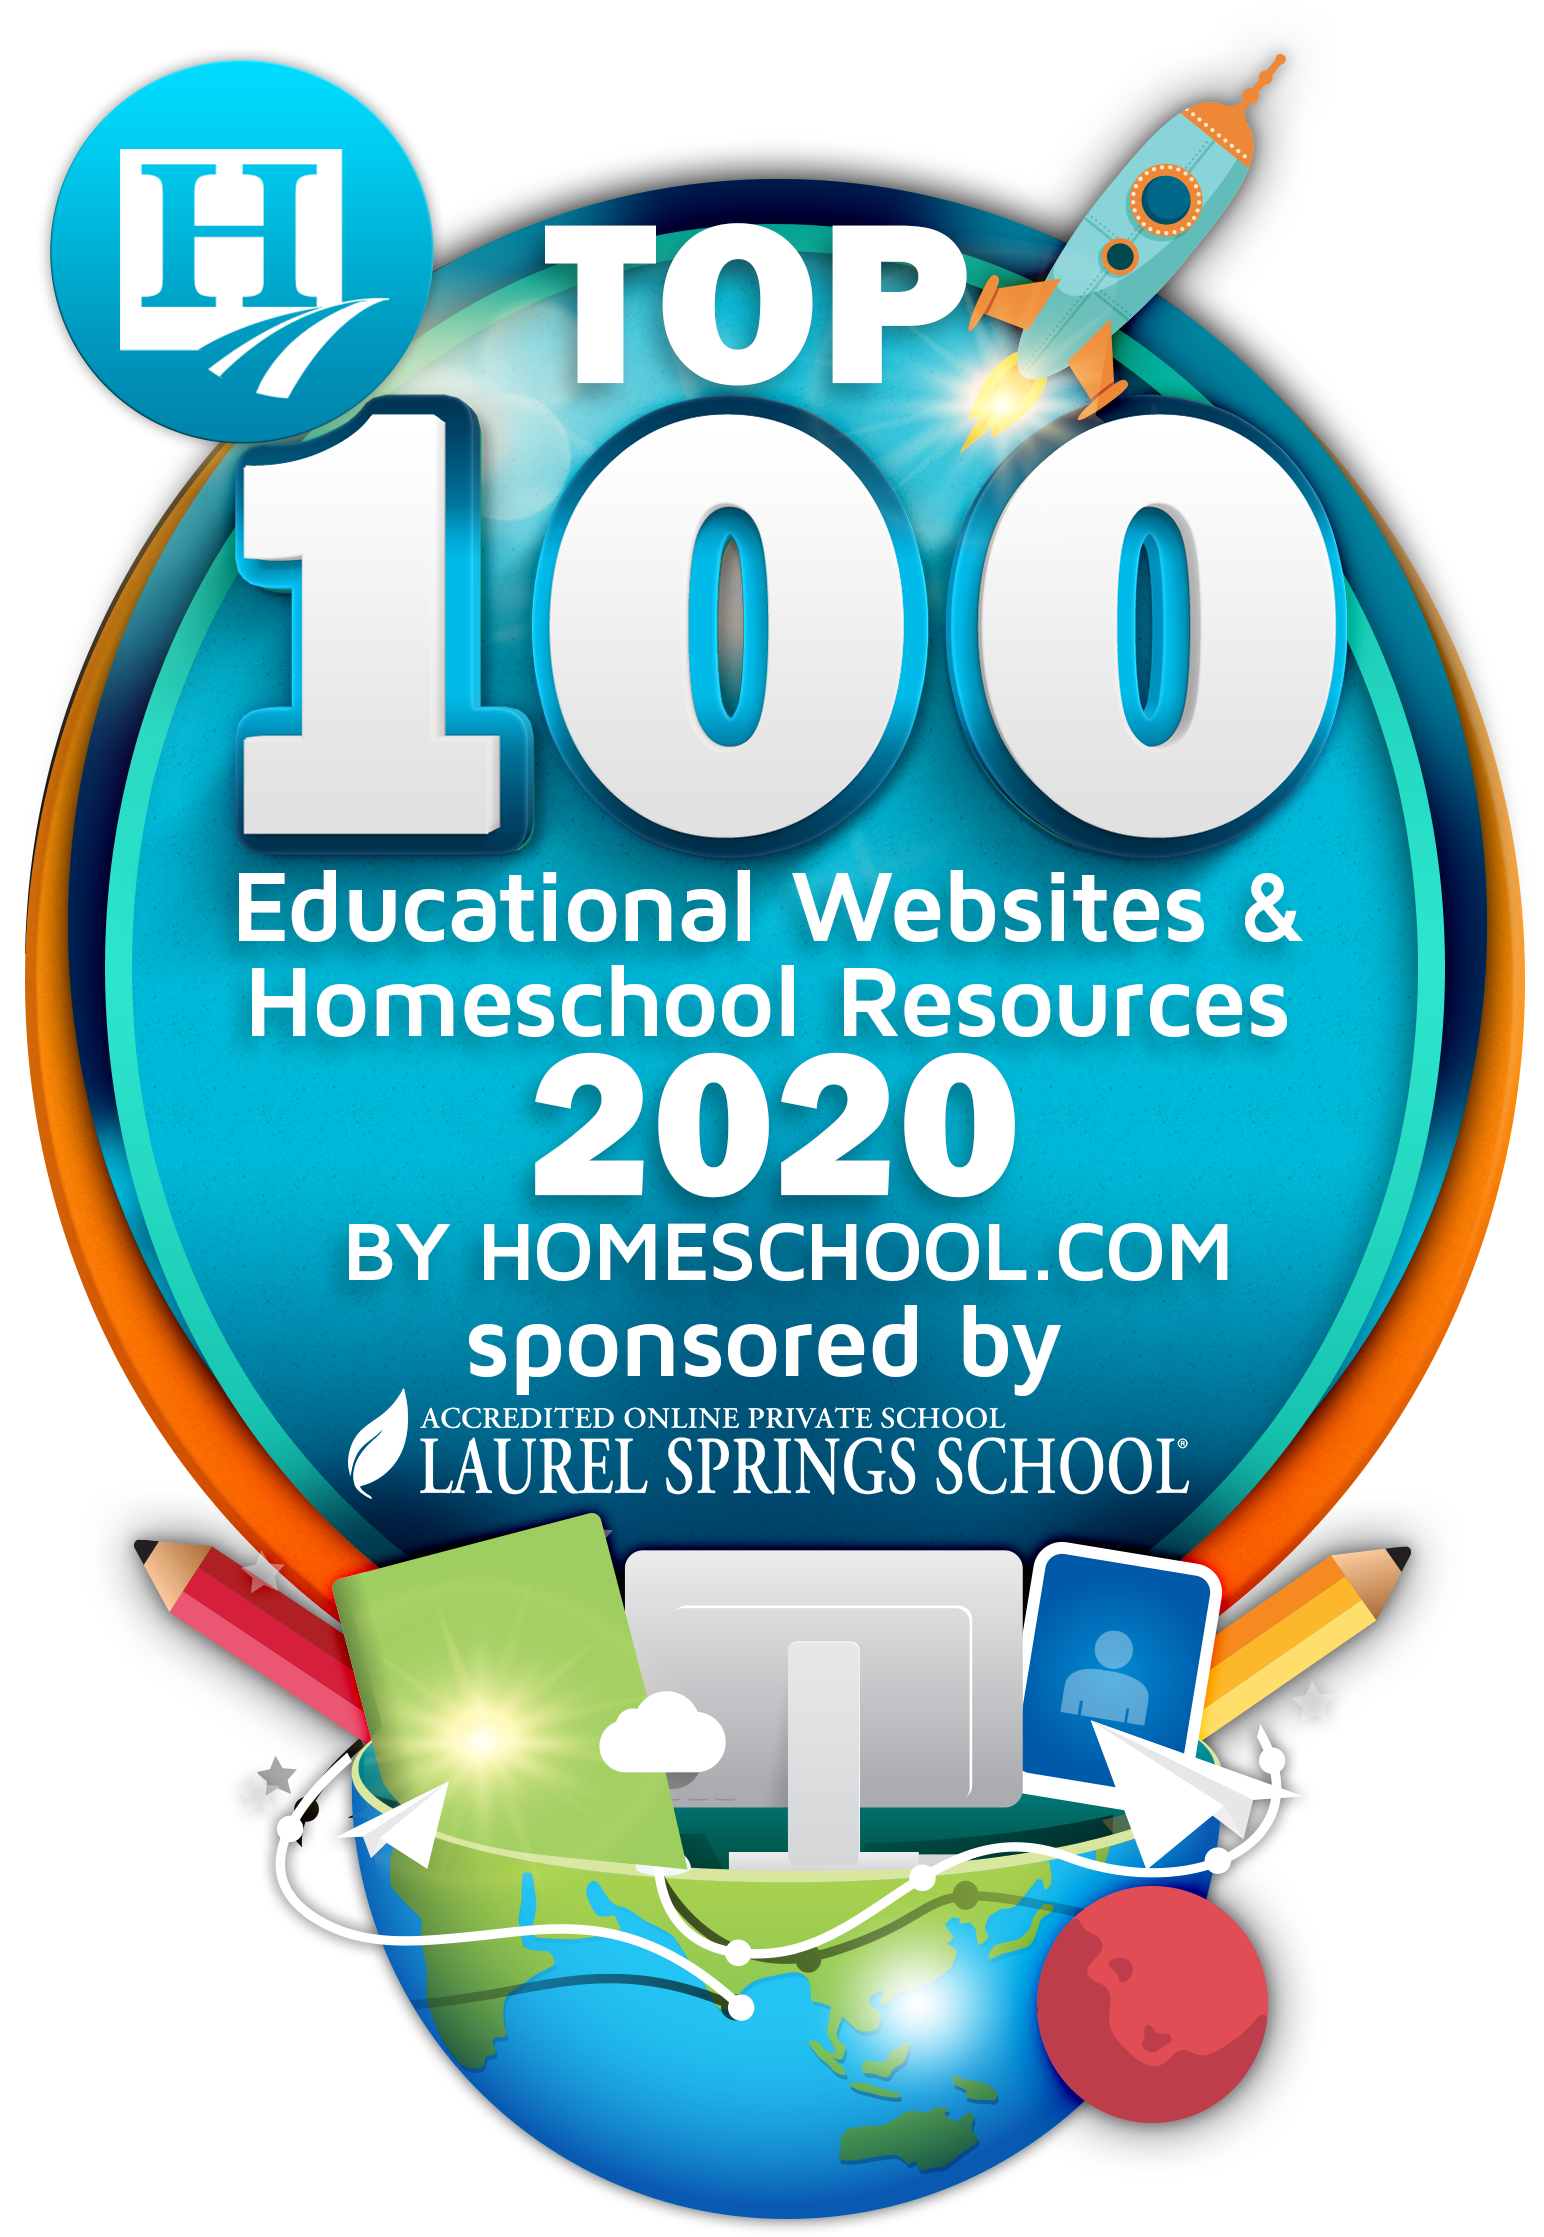 Top 100 Edcuational Websites and Resources